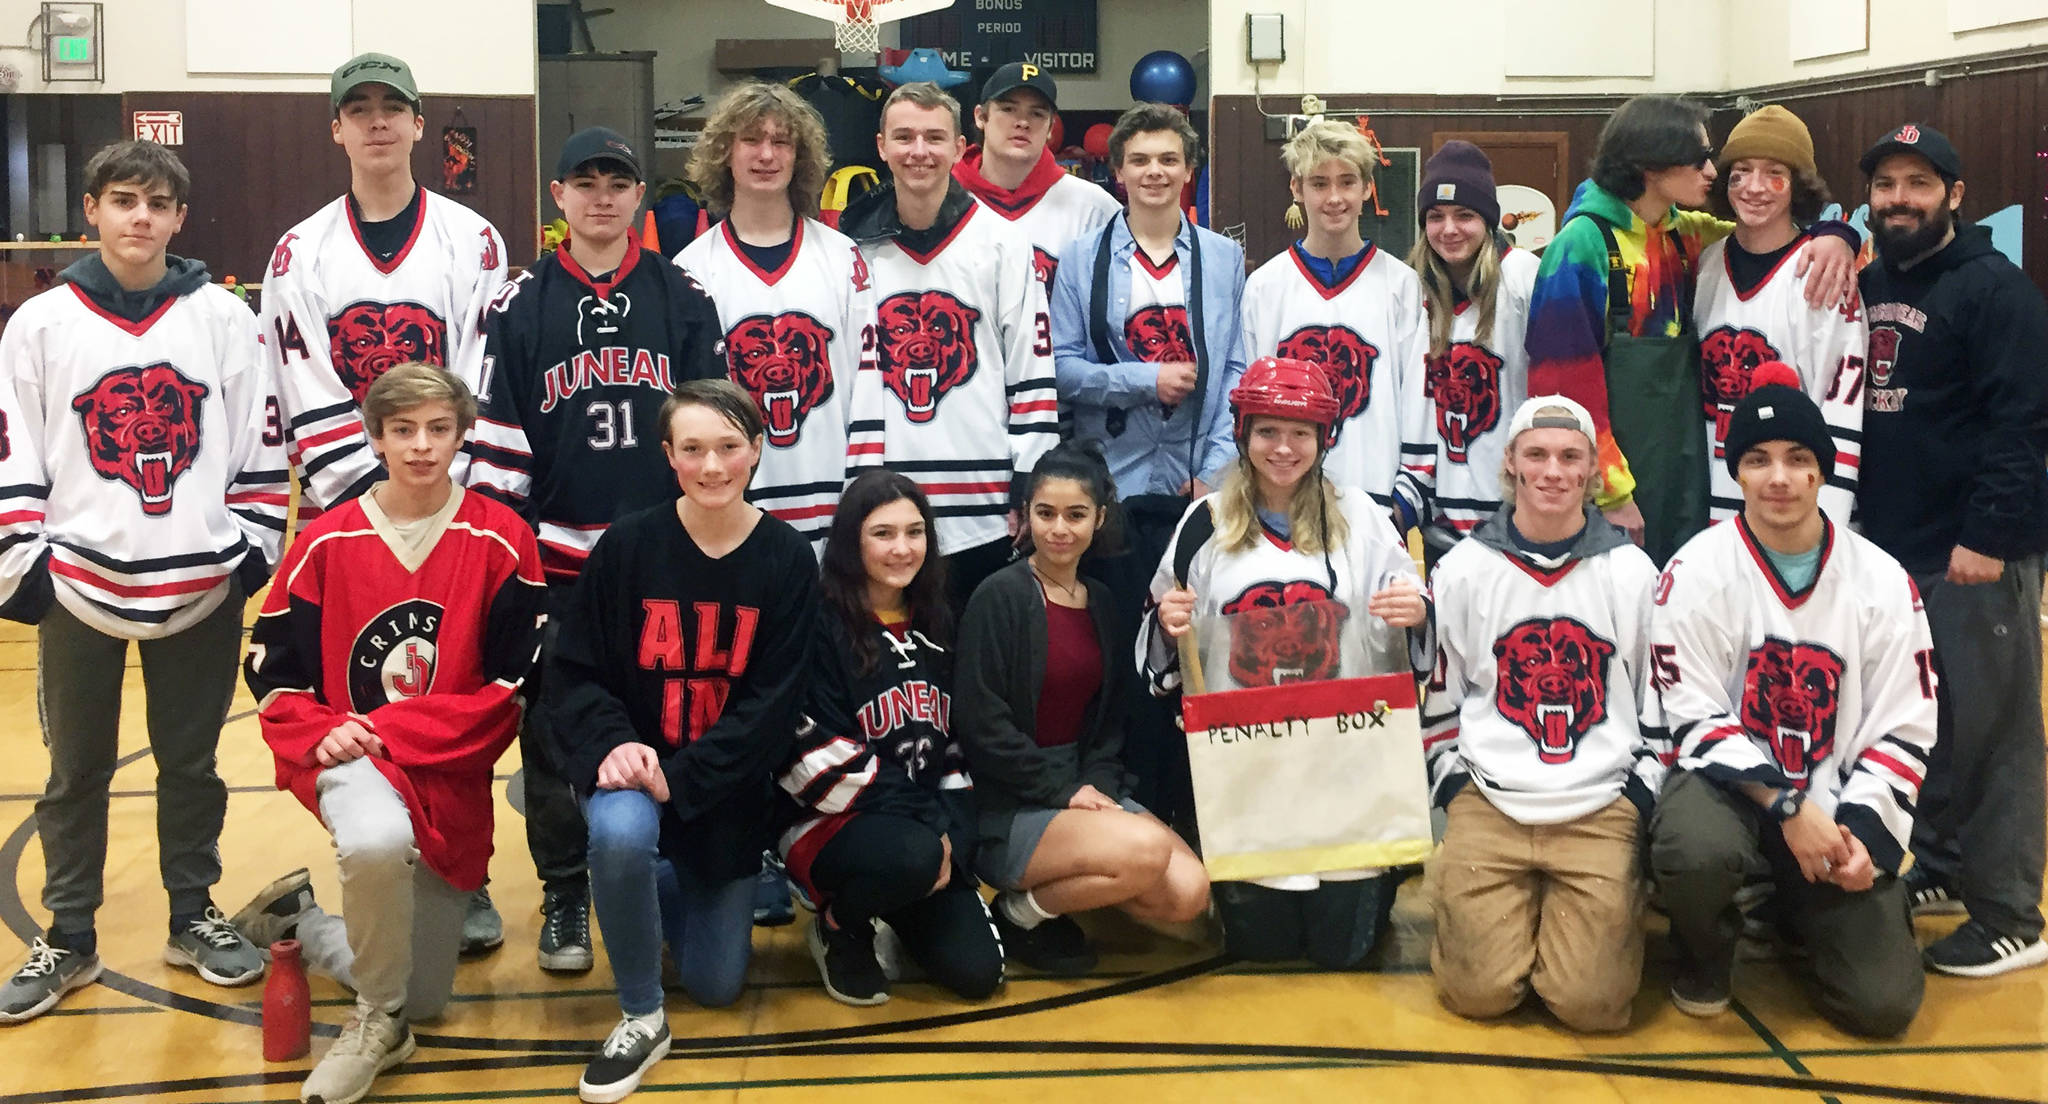 The JDHS hockey team poses for a photo after volunteering at the Douglas Ghost Walk. (Courtesy photo)